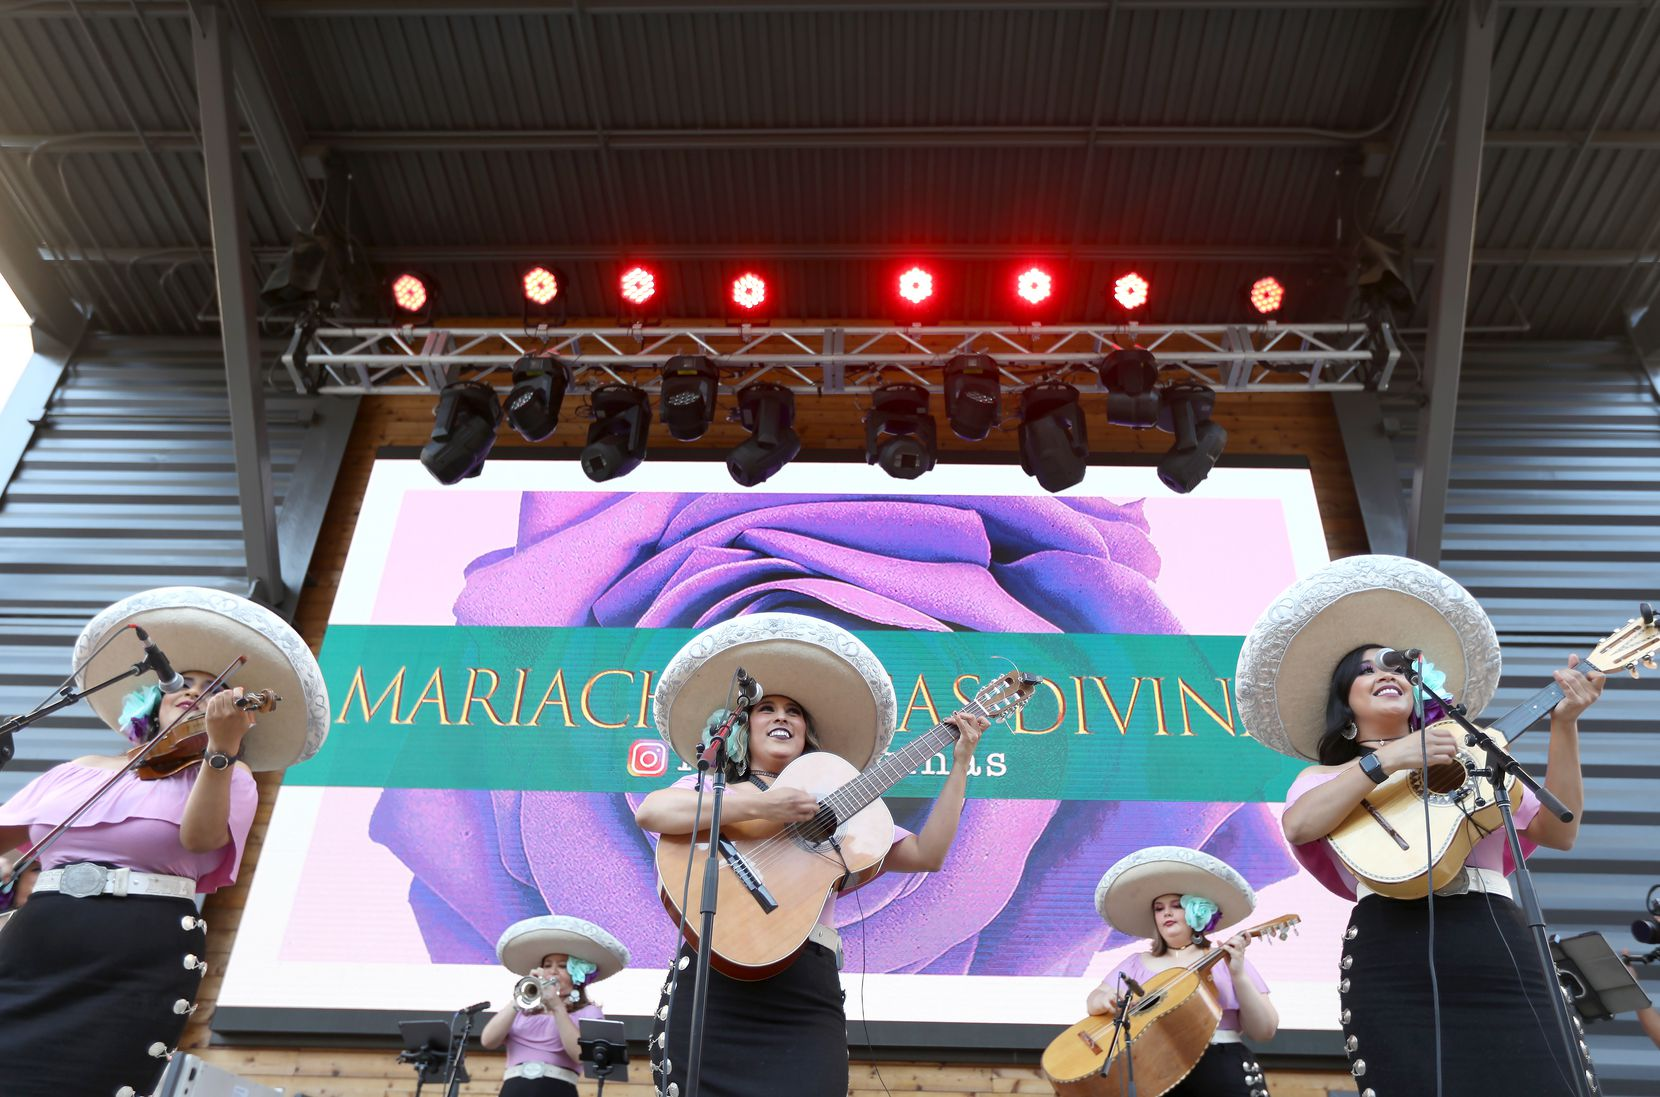 Rosas Divinas performed just five times last year. In a typical year, they're on stage for up to 250 shows.